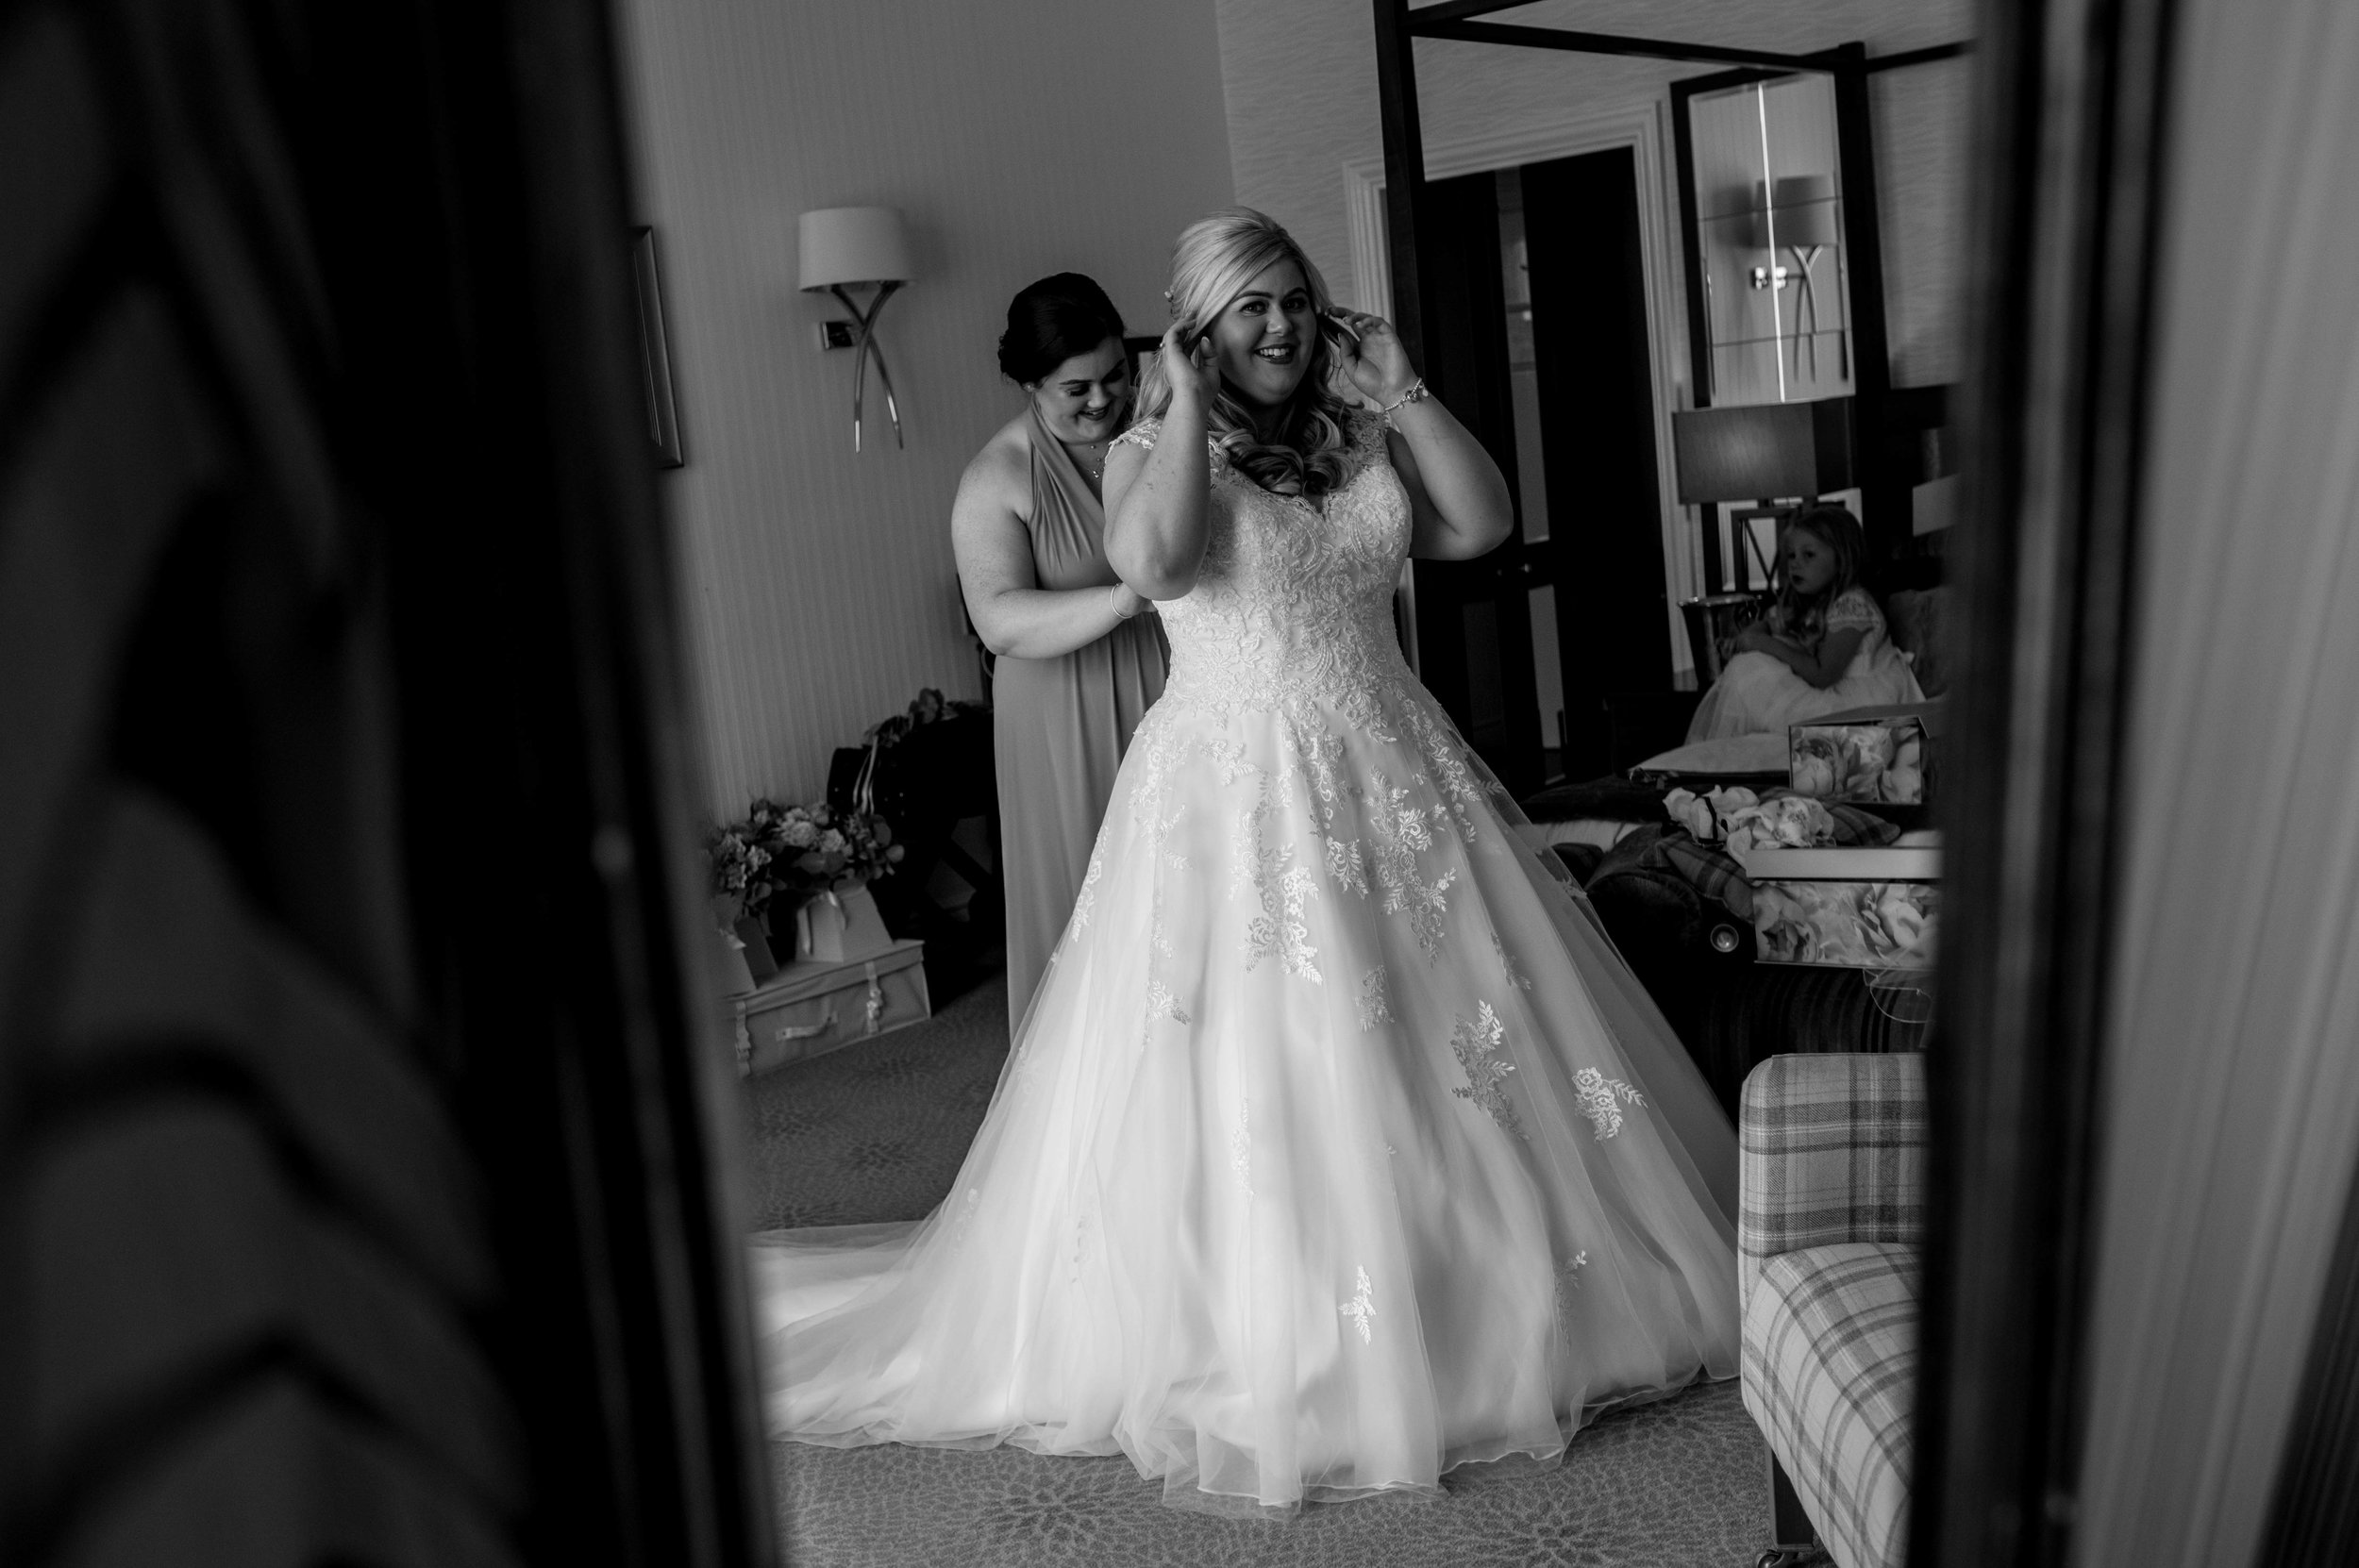 The bride laughs as she's getting her wedding dress on